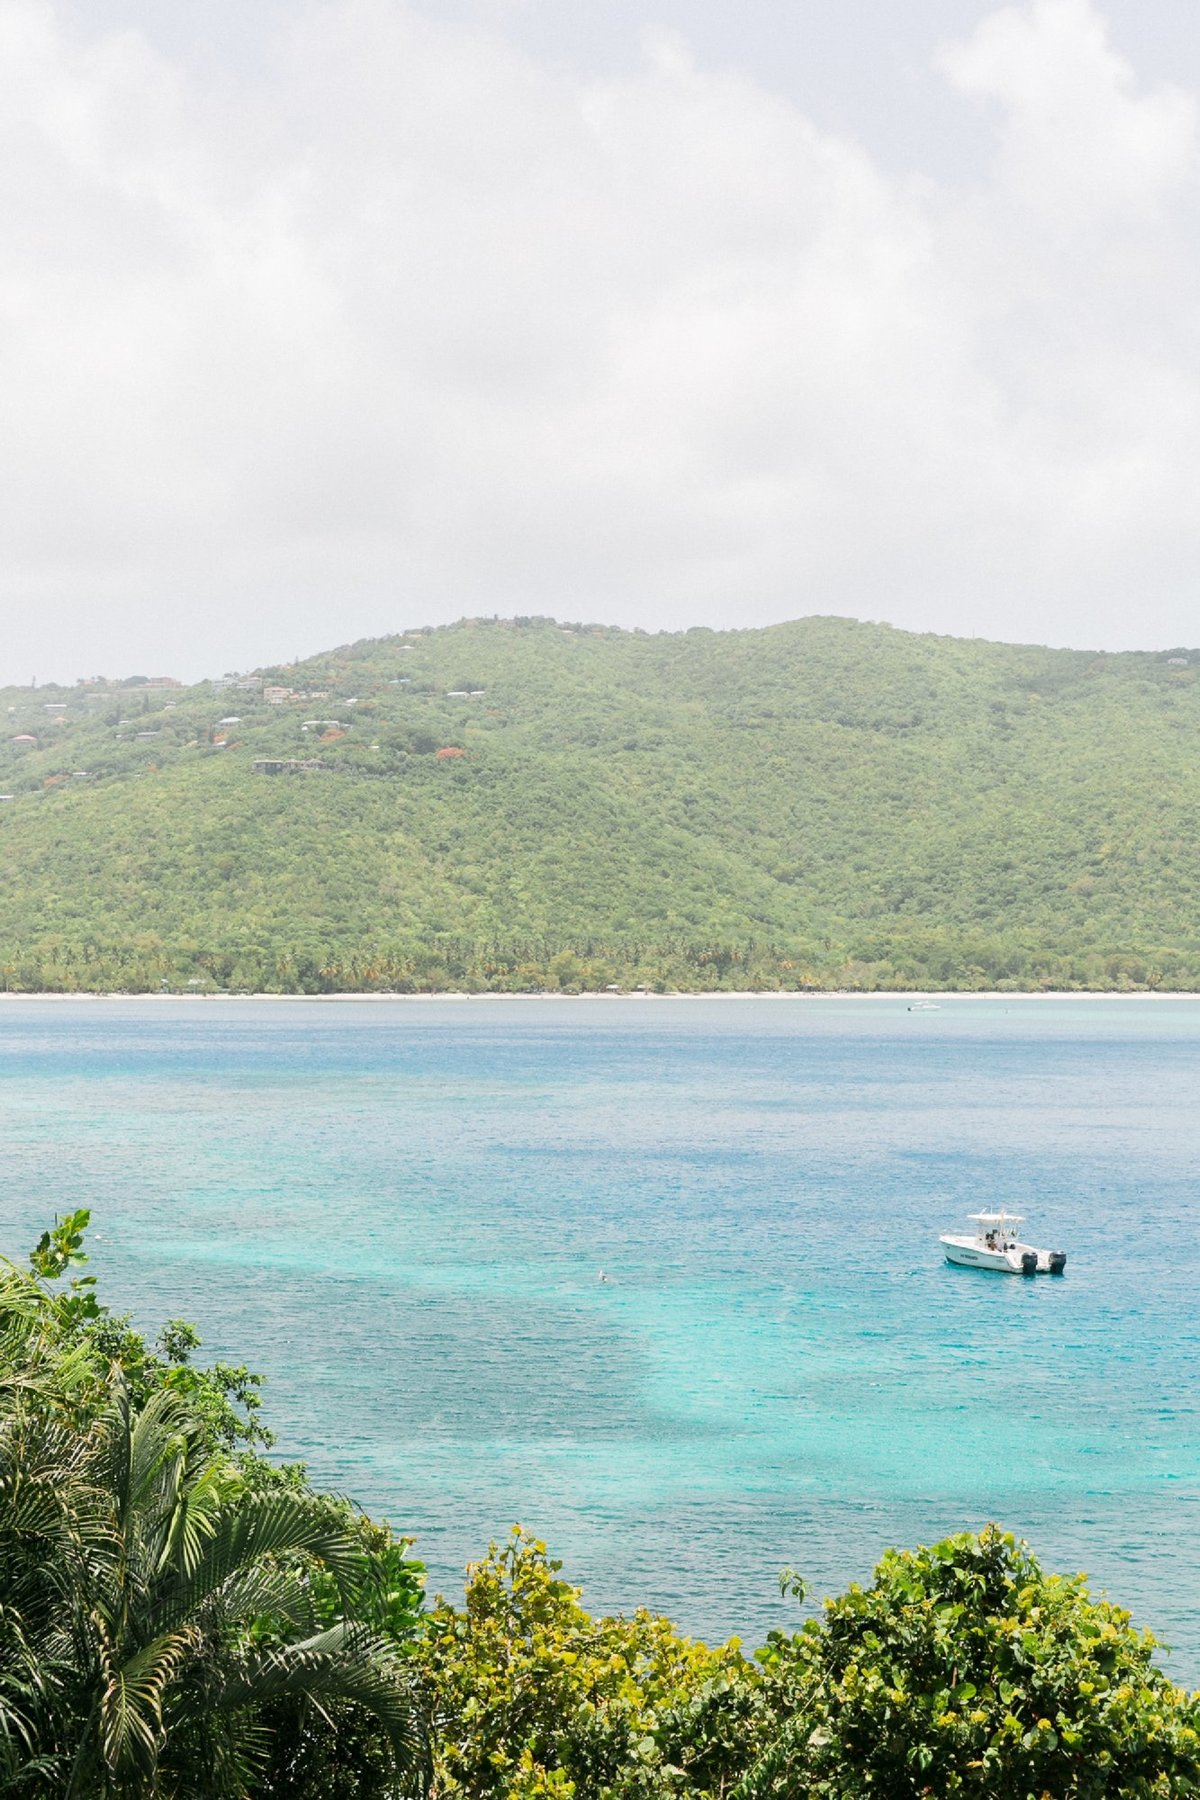 st_thomas_jasmine_lee_photography_0001